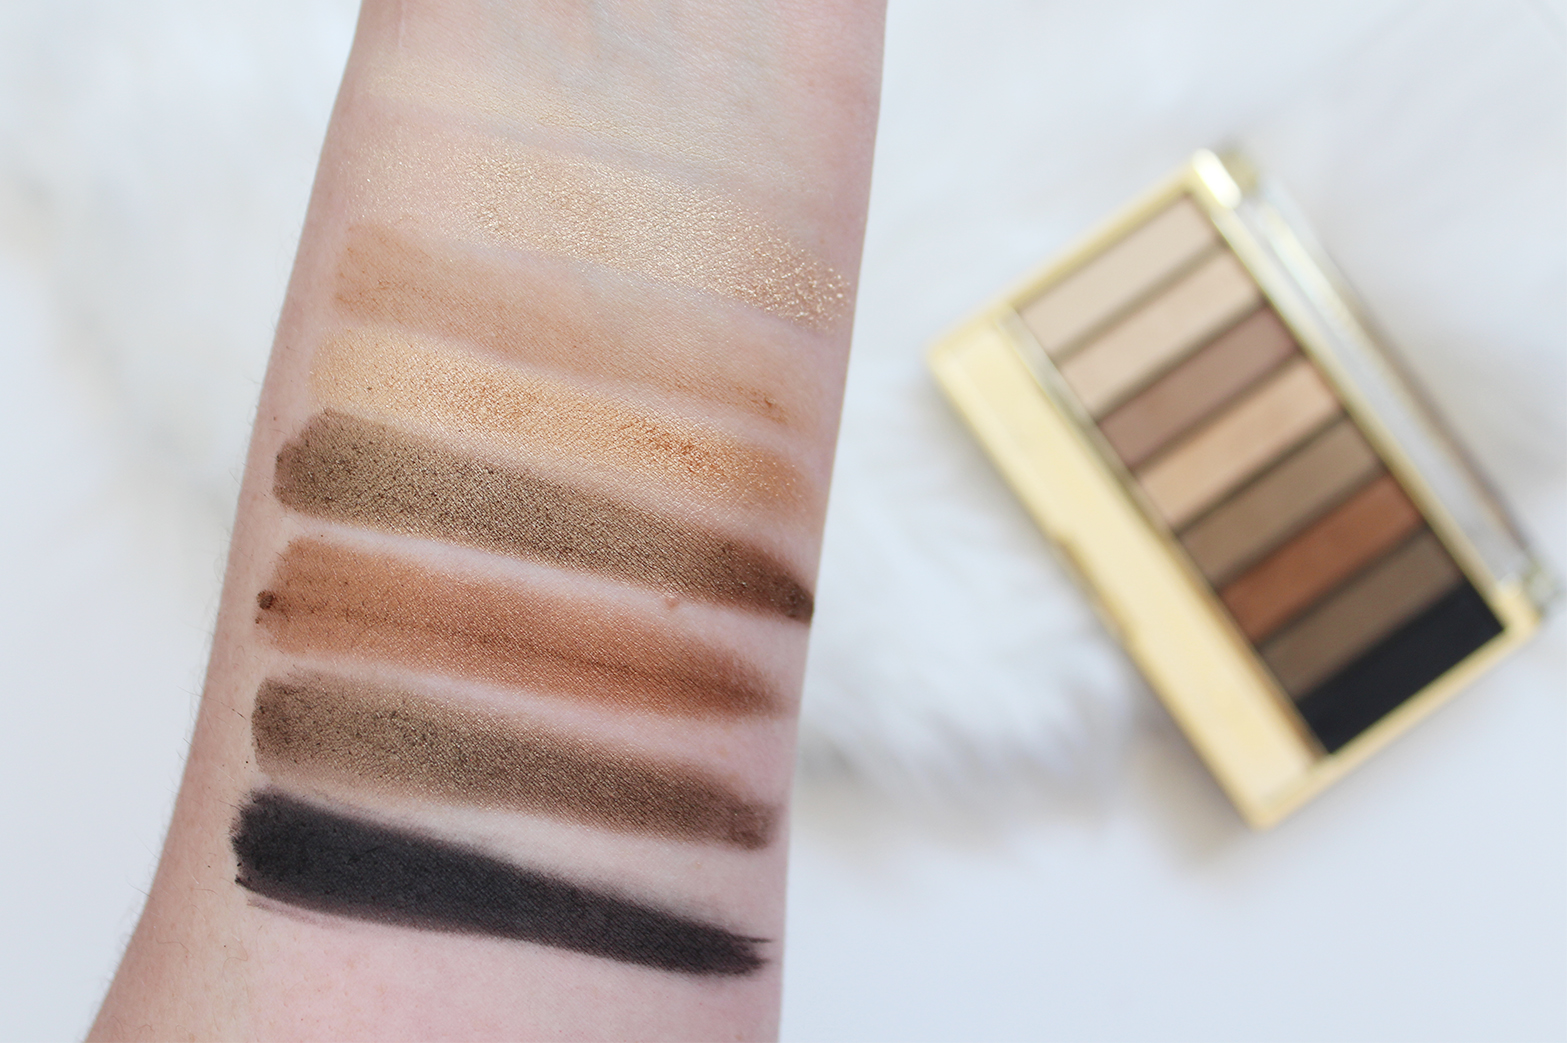 MAX FACTOR | Masterpiece Nude Palette Contouring Eye Shadows in 02 Golden Nudes - Review + Swatches - CassandraMyee